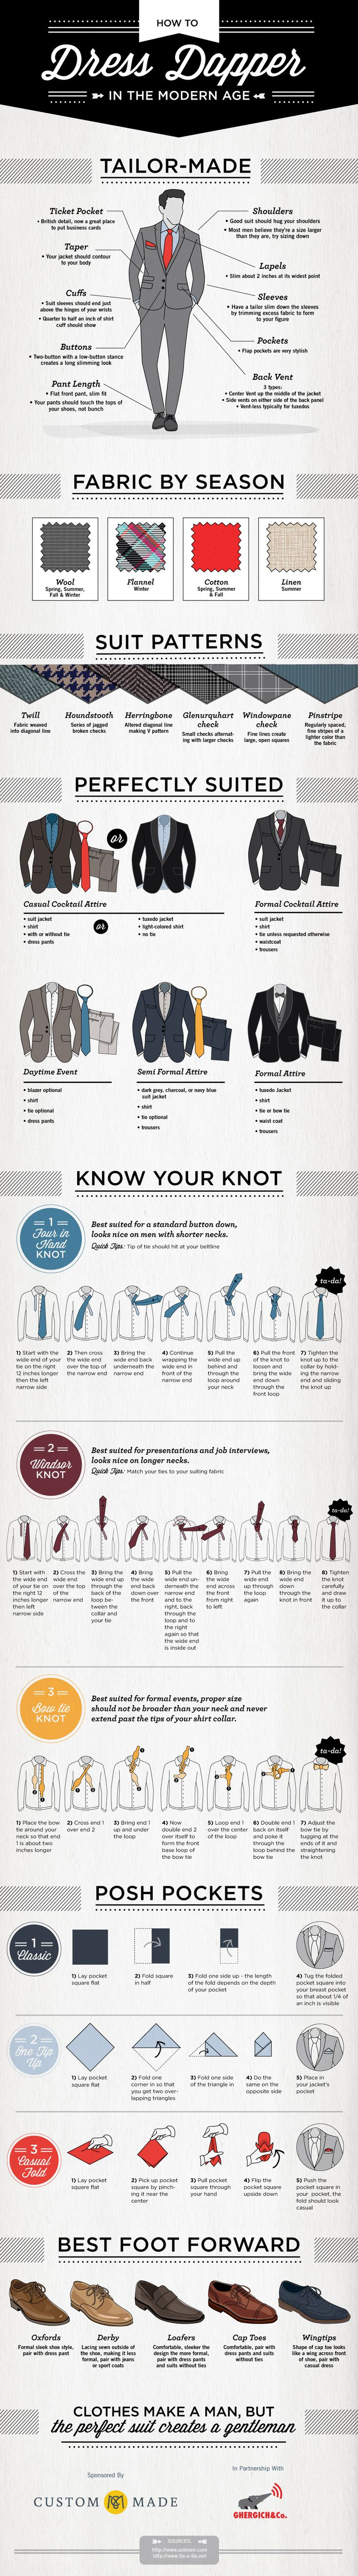 How To Dress Dapper In The Modern Age